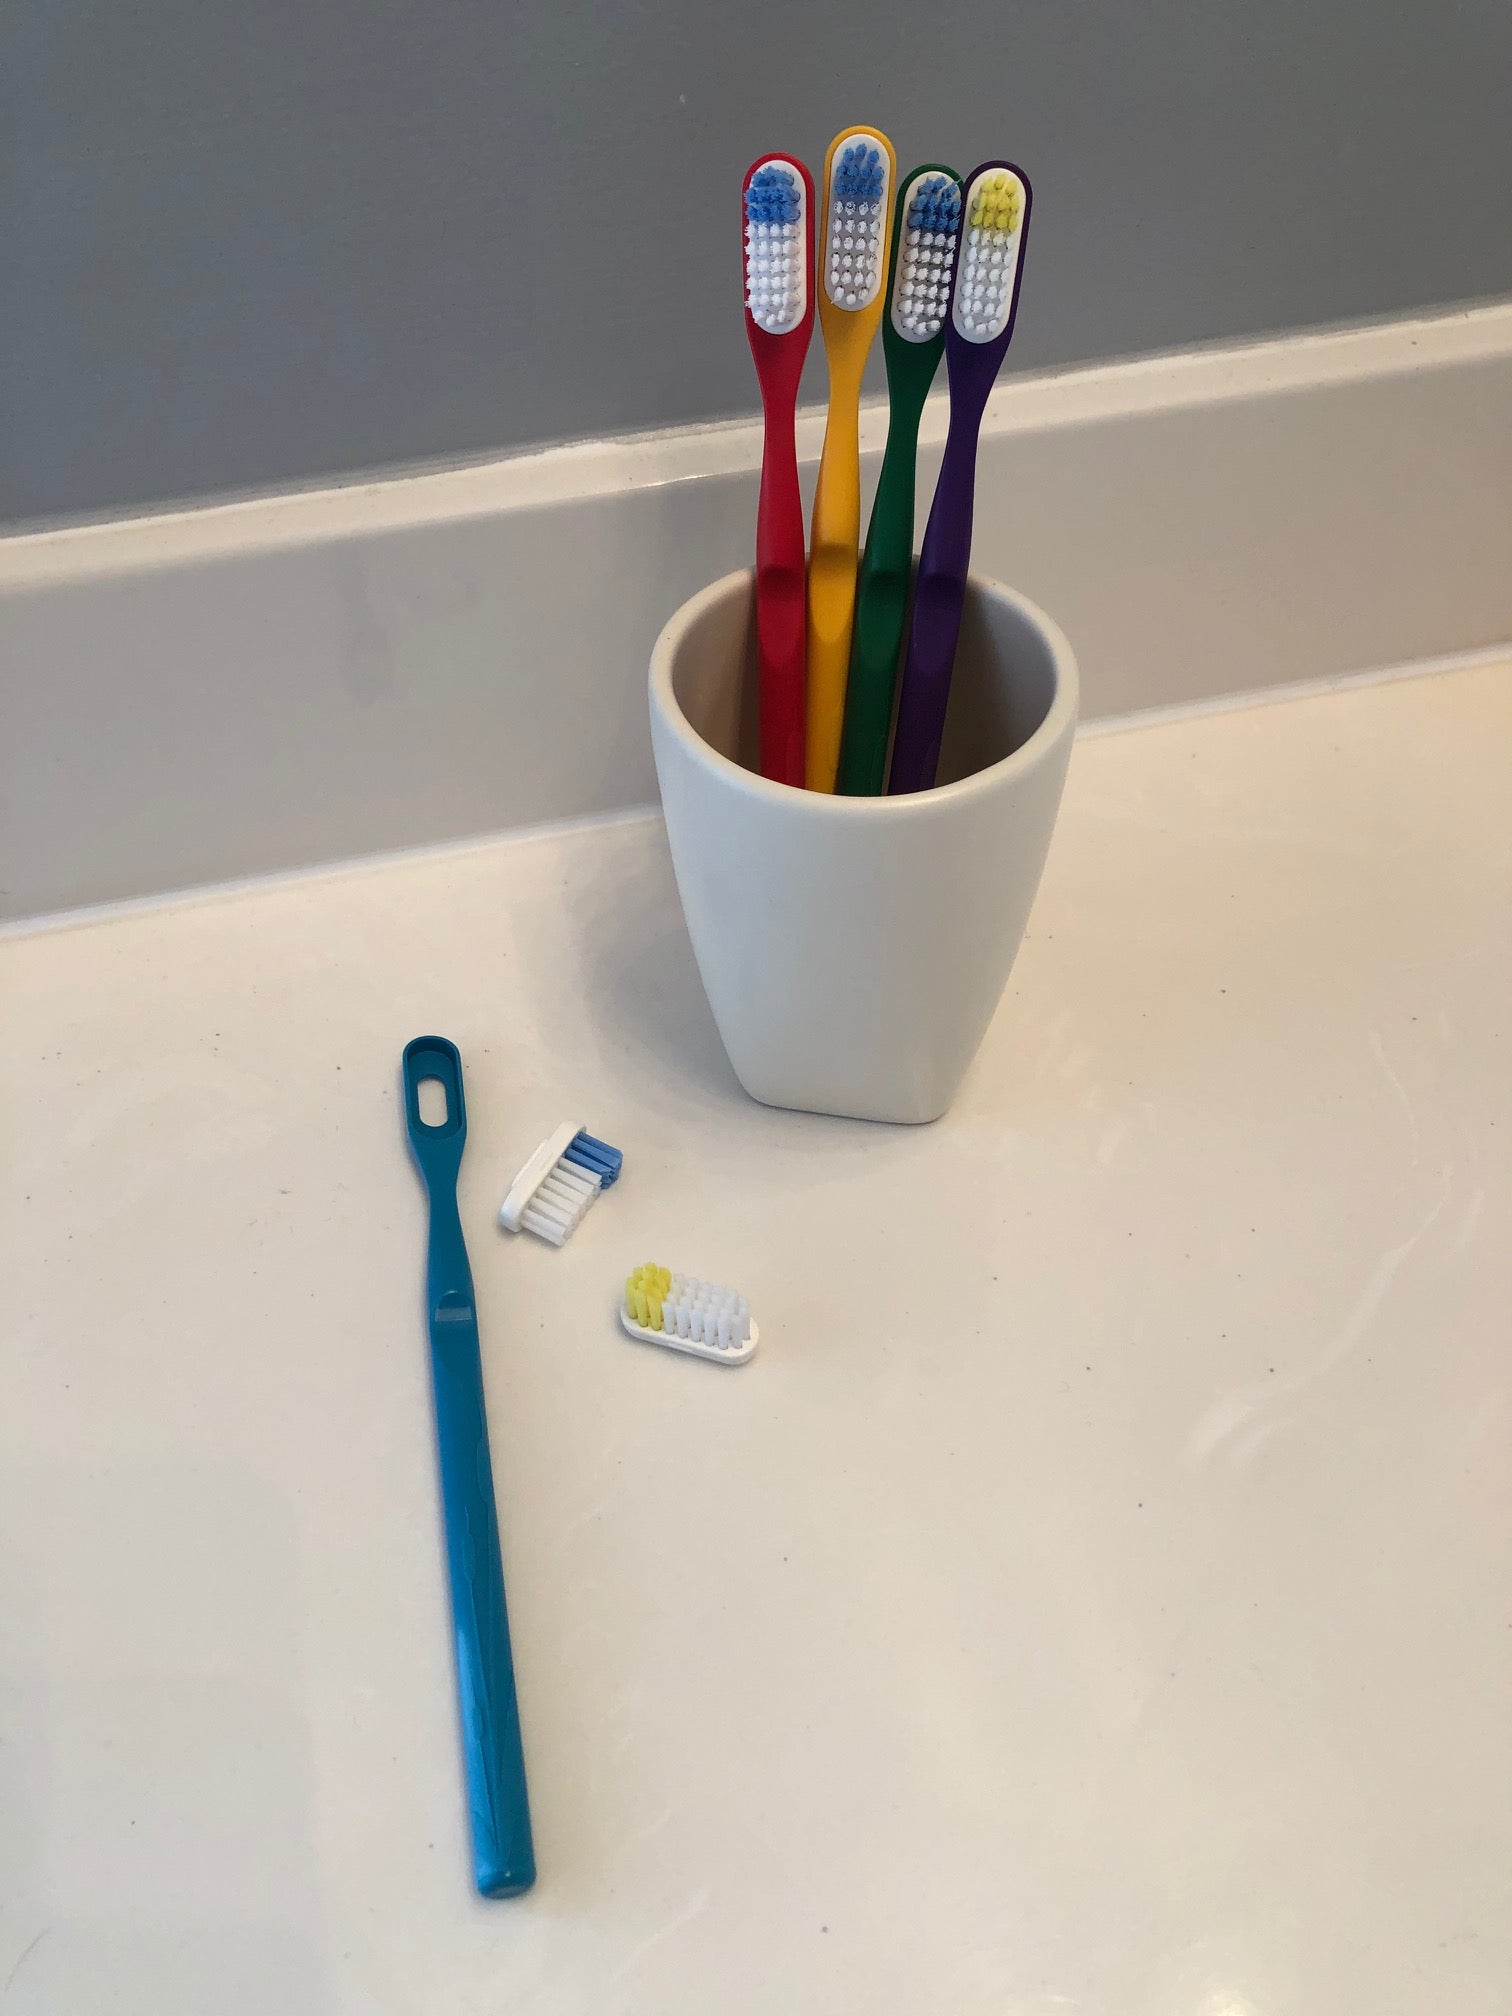 Toothbrush with replaceable-head